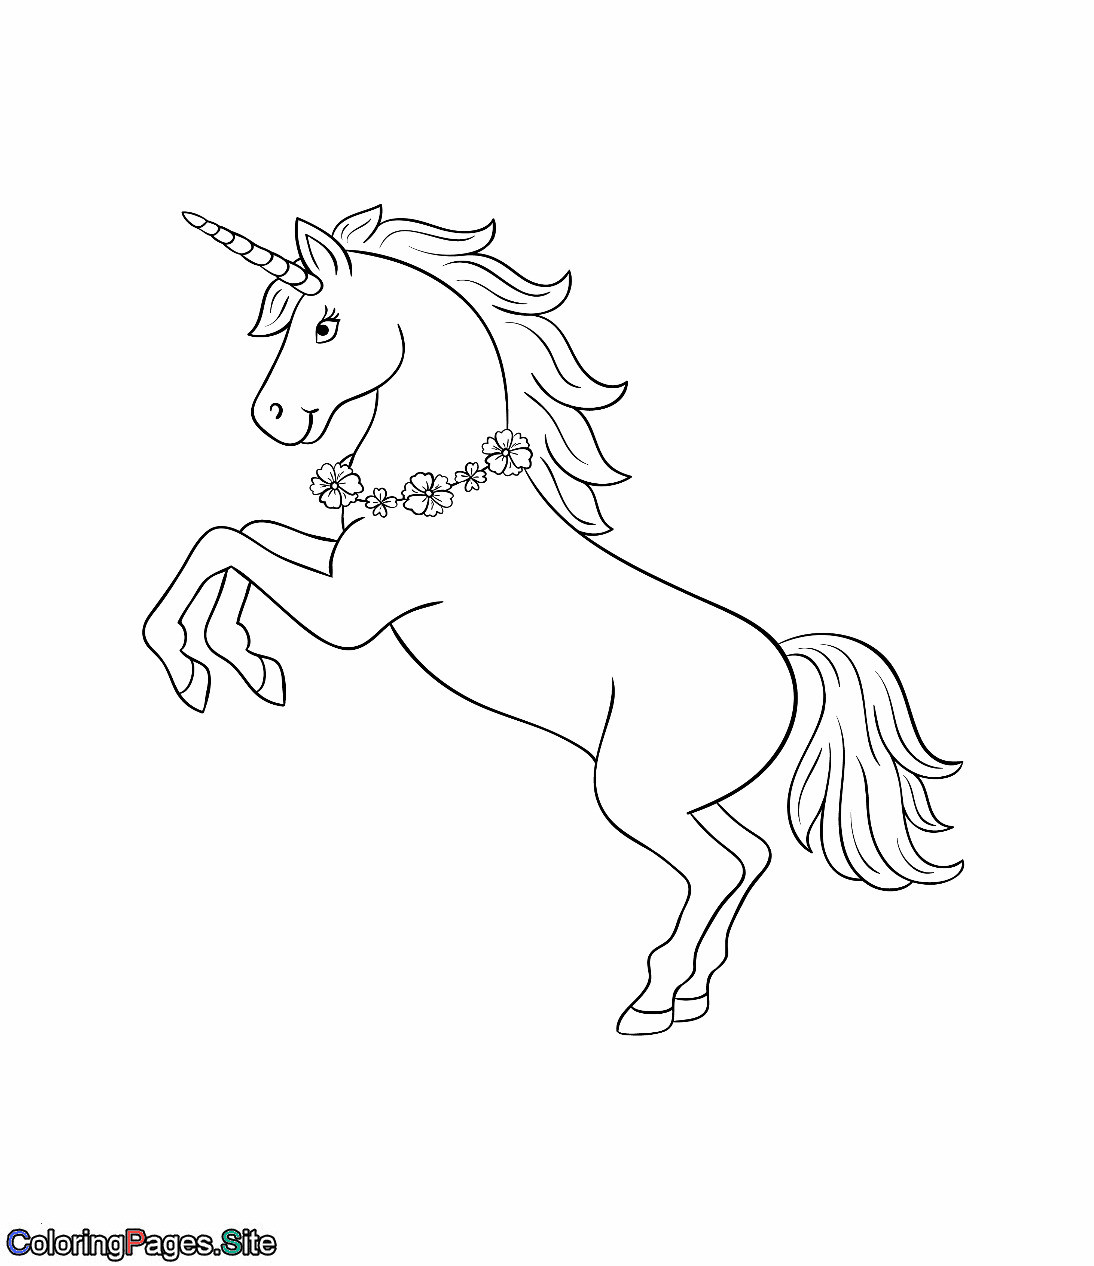 Emojis Zum Ausmalen Frisch Unicorn with A Flowers Necklace Coloring Page Best Ausmalbilder Fotos